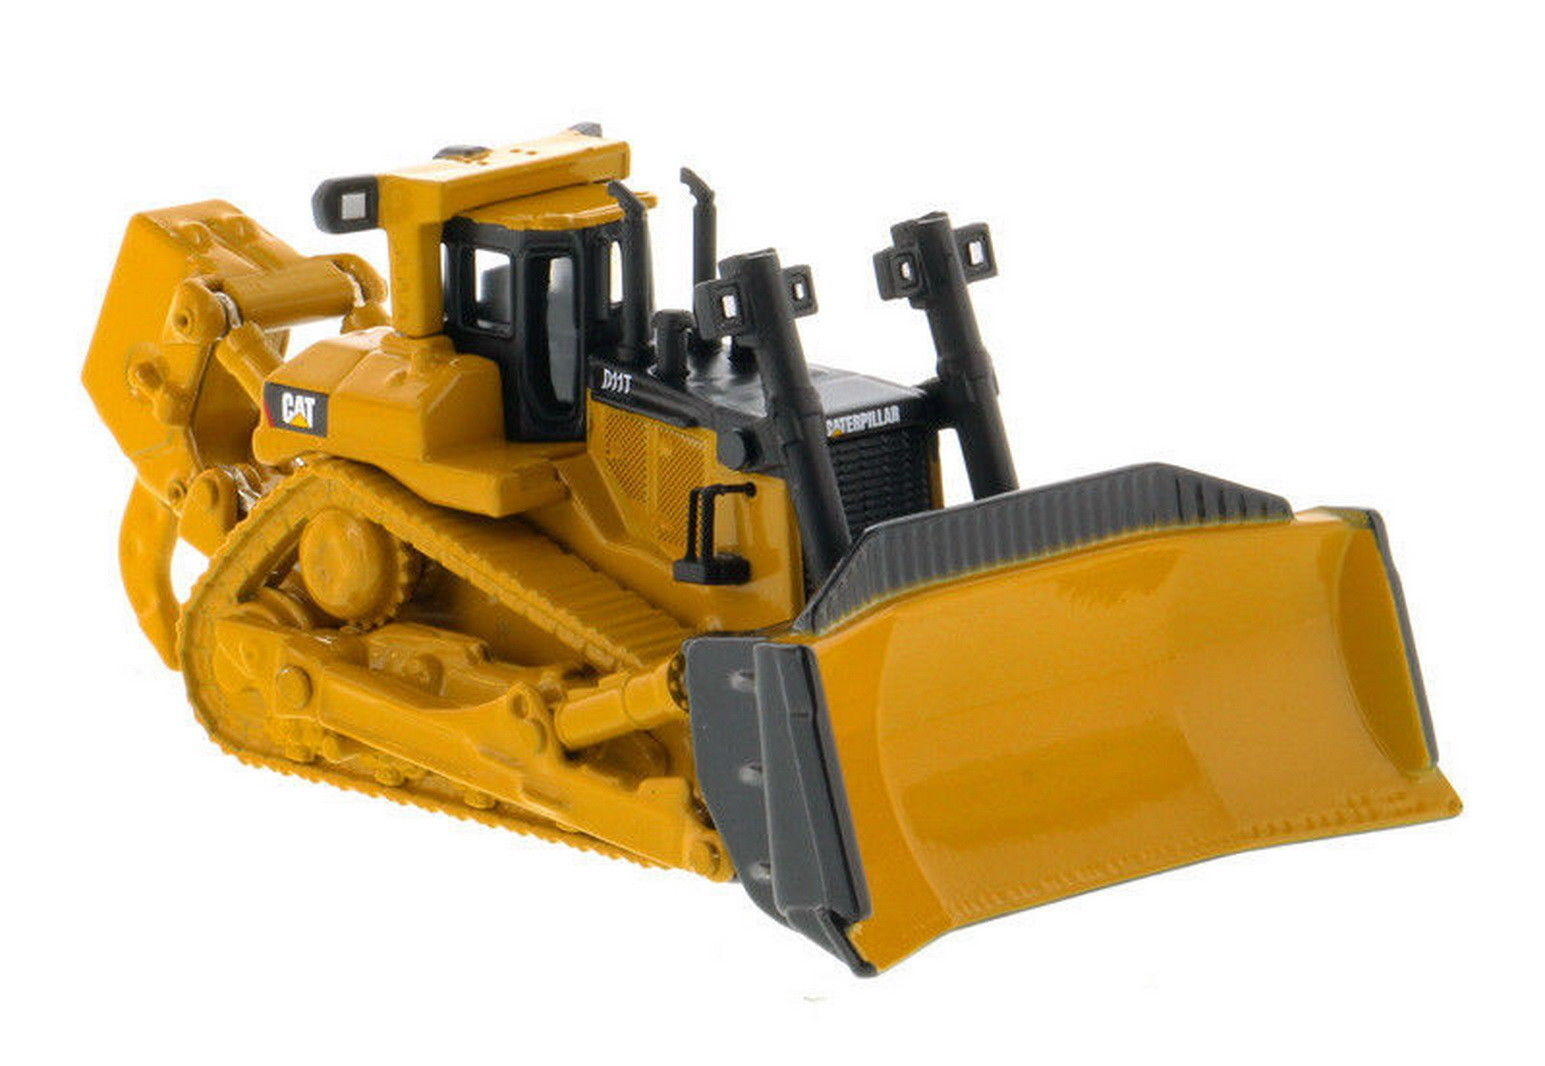 1 125 DM Caterpillar Cat D11T Track type Dozer Elite Diecast